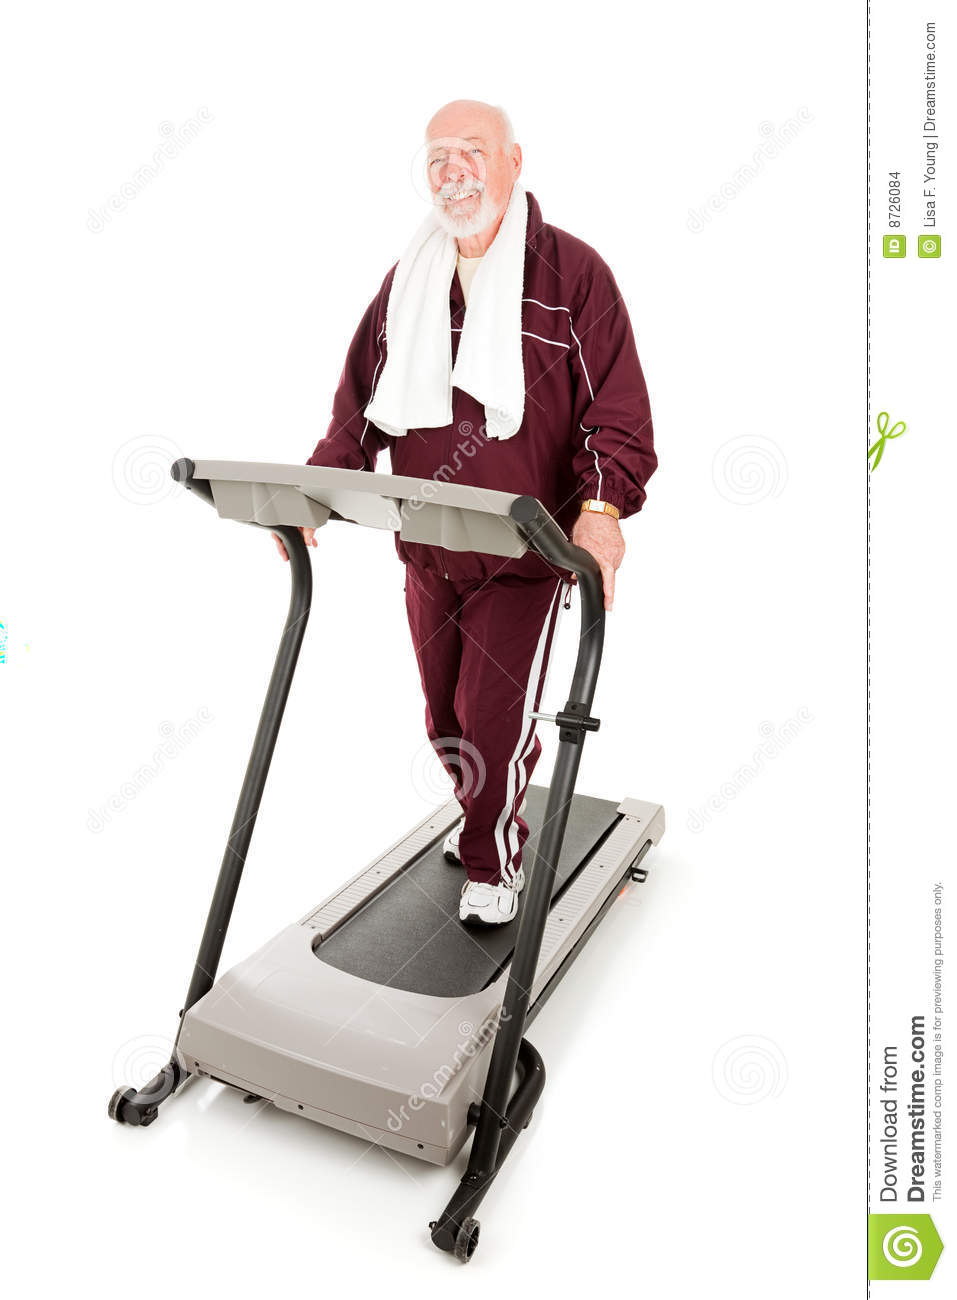 Handsome Fit Senior Man Exercising On A Treadmill  Full Body Isolated